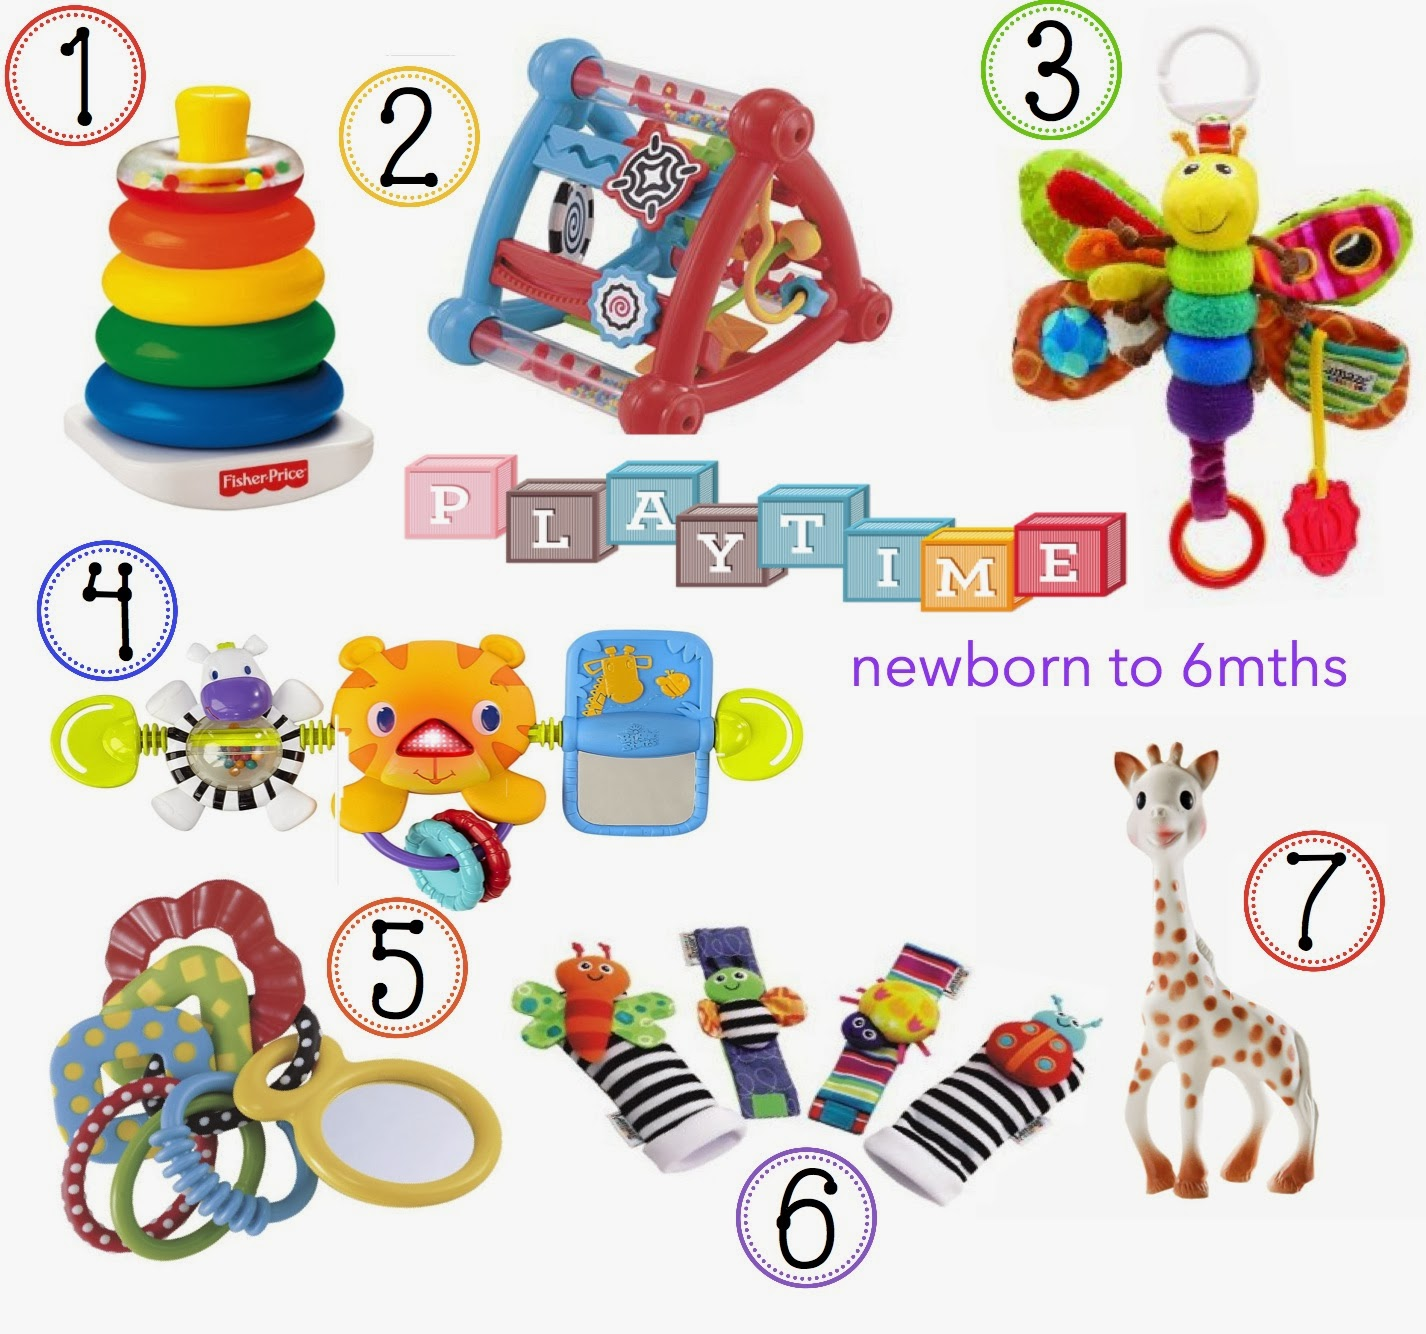 mamasVIb | V. I. BUSY BEES: Classic toys that every kid should have in their toy box! Part 1 - newborns - 6months, V. I. BUSY BEES |Classic toys for newborns - 6 months | classic babies and kids toys | playtime | learning | mamasVIB